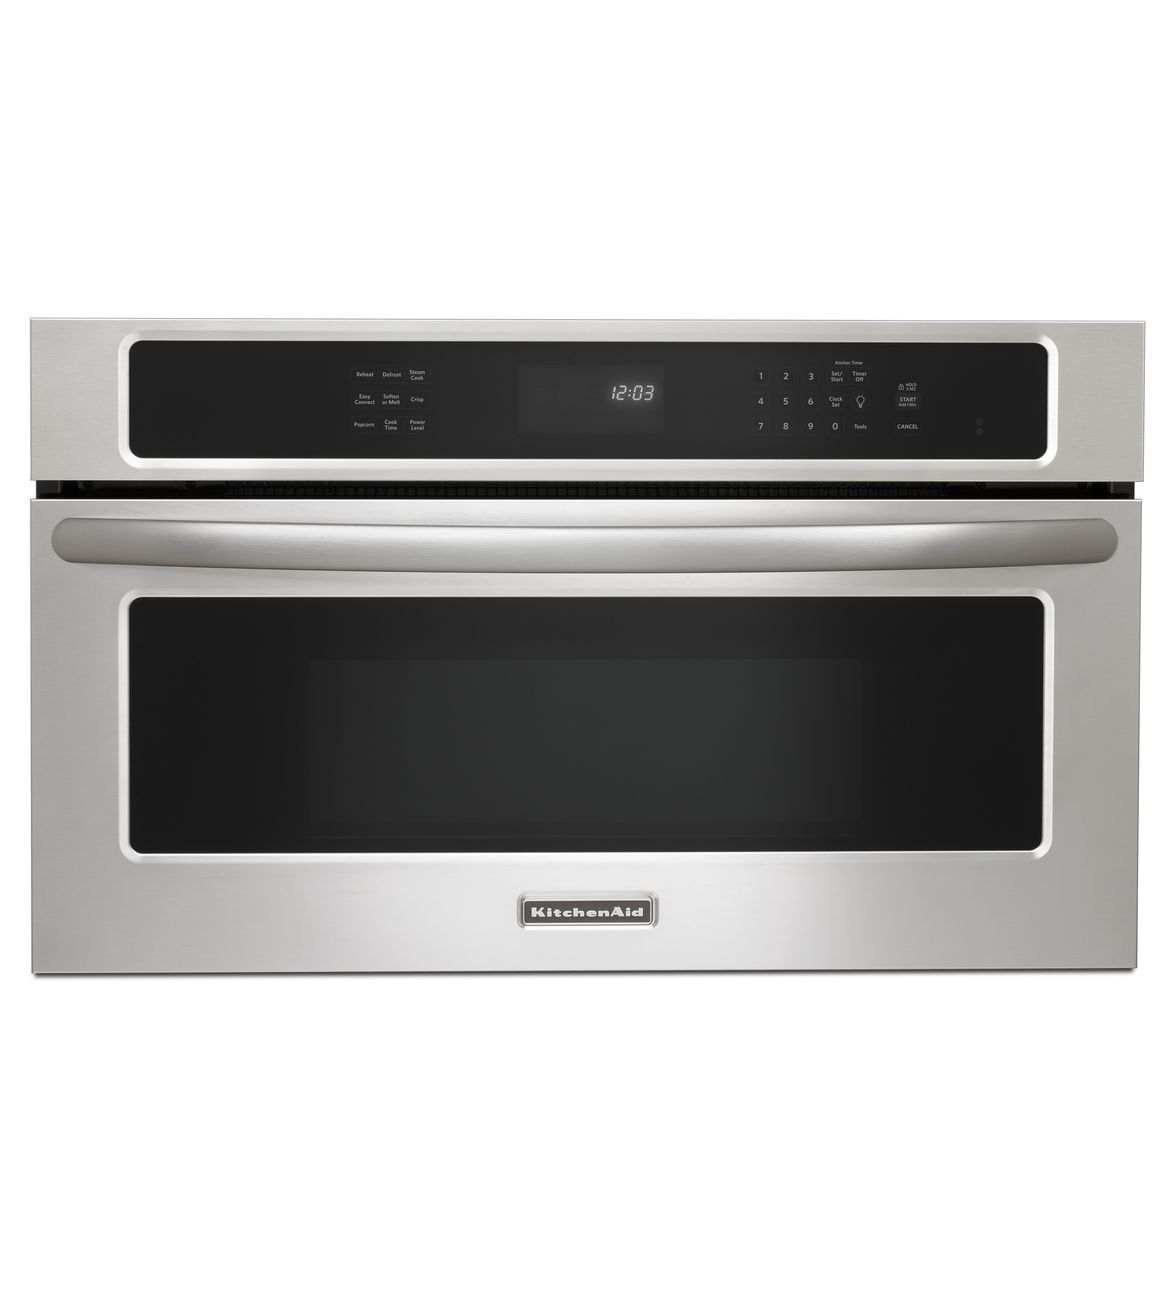 Kitchenaid 174 27 900 Watt Convection Built In Microwave